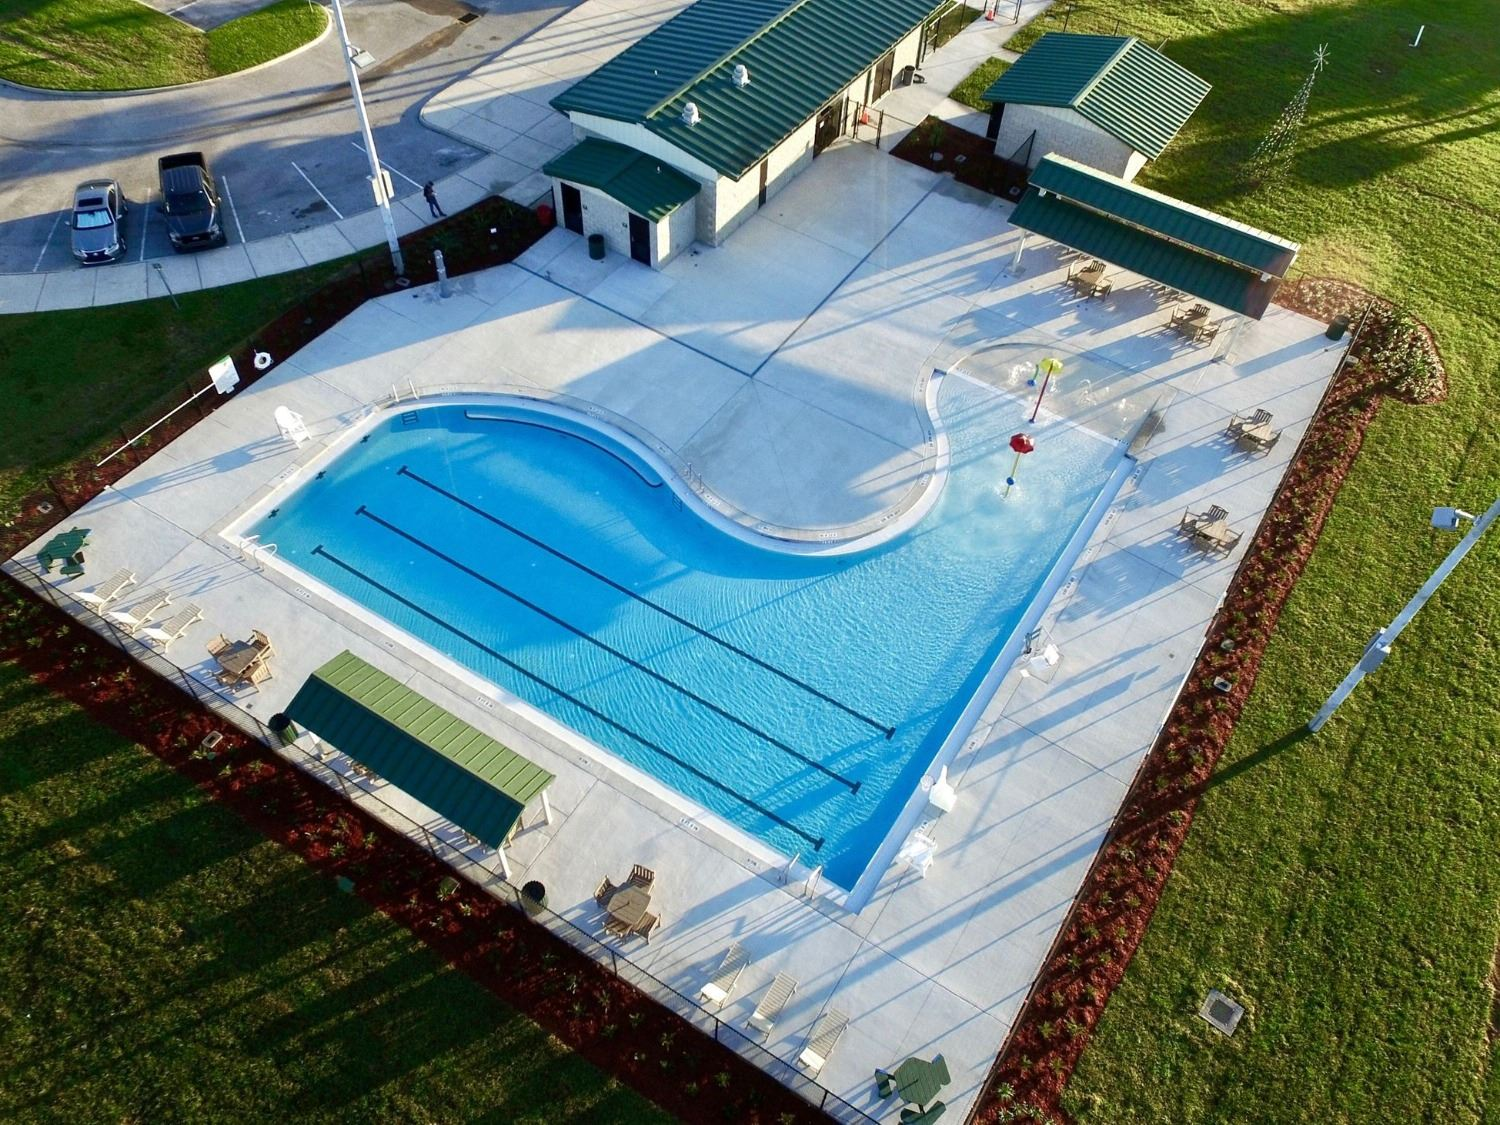 Aerial Photo of Janet J. Smith Aquatics Facility